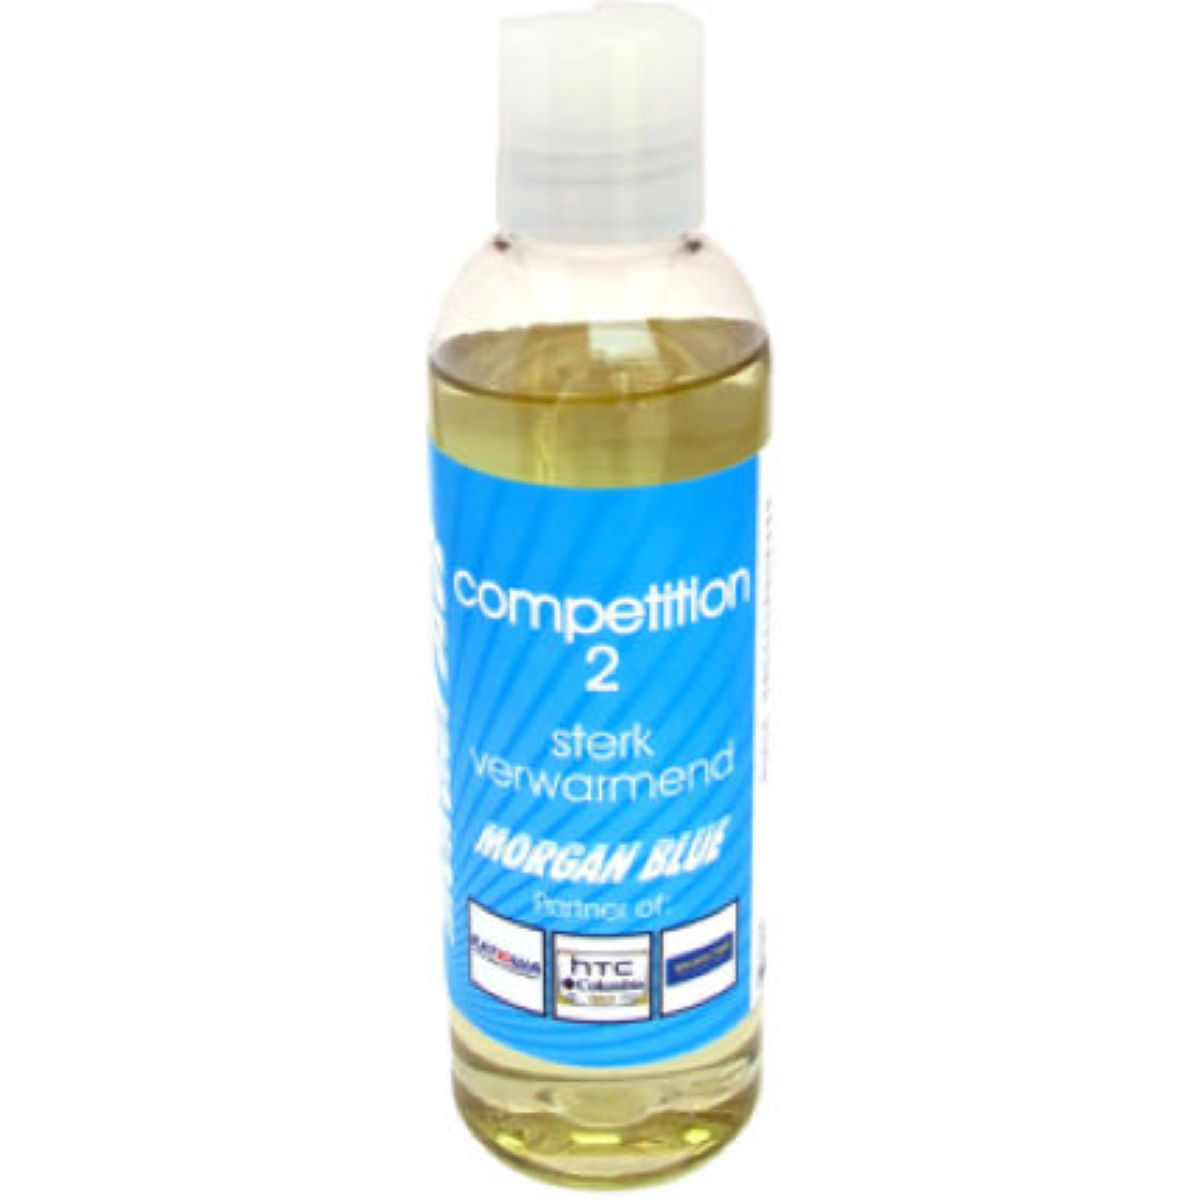 Morgan Blue Morgan Blue Competition 2 Pre-Race Oil (200ml)   Moisturisers and Skin Care